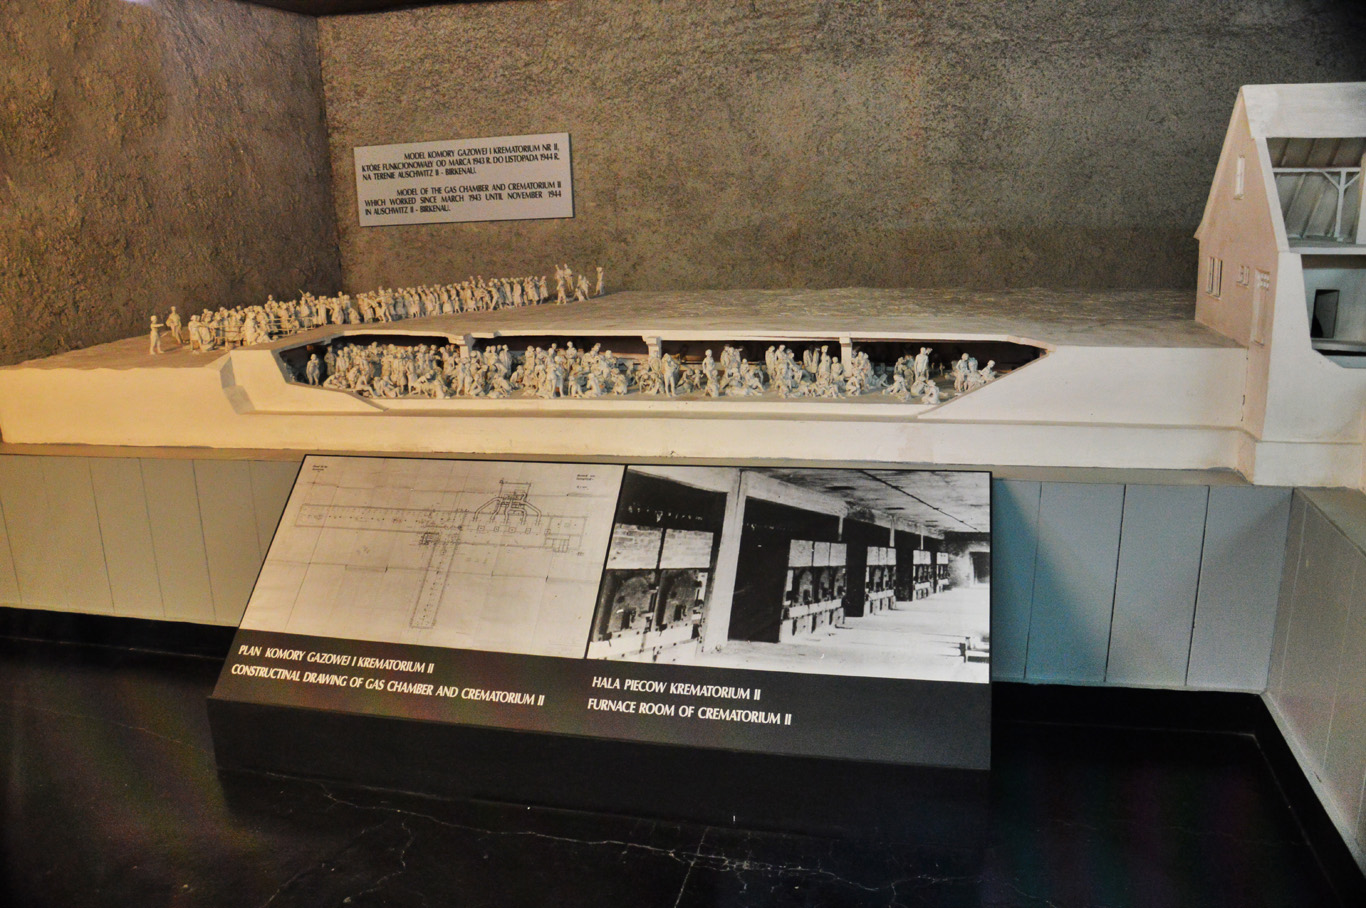 A model of a gas chamber